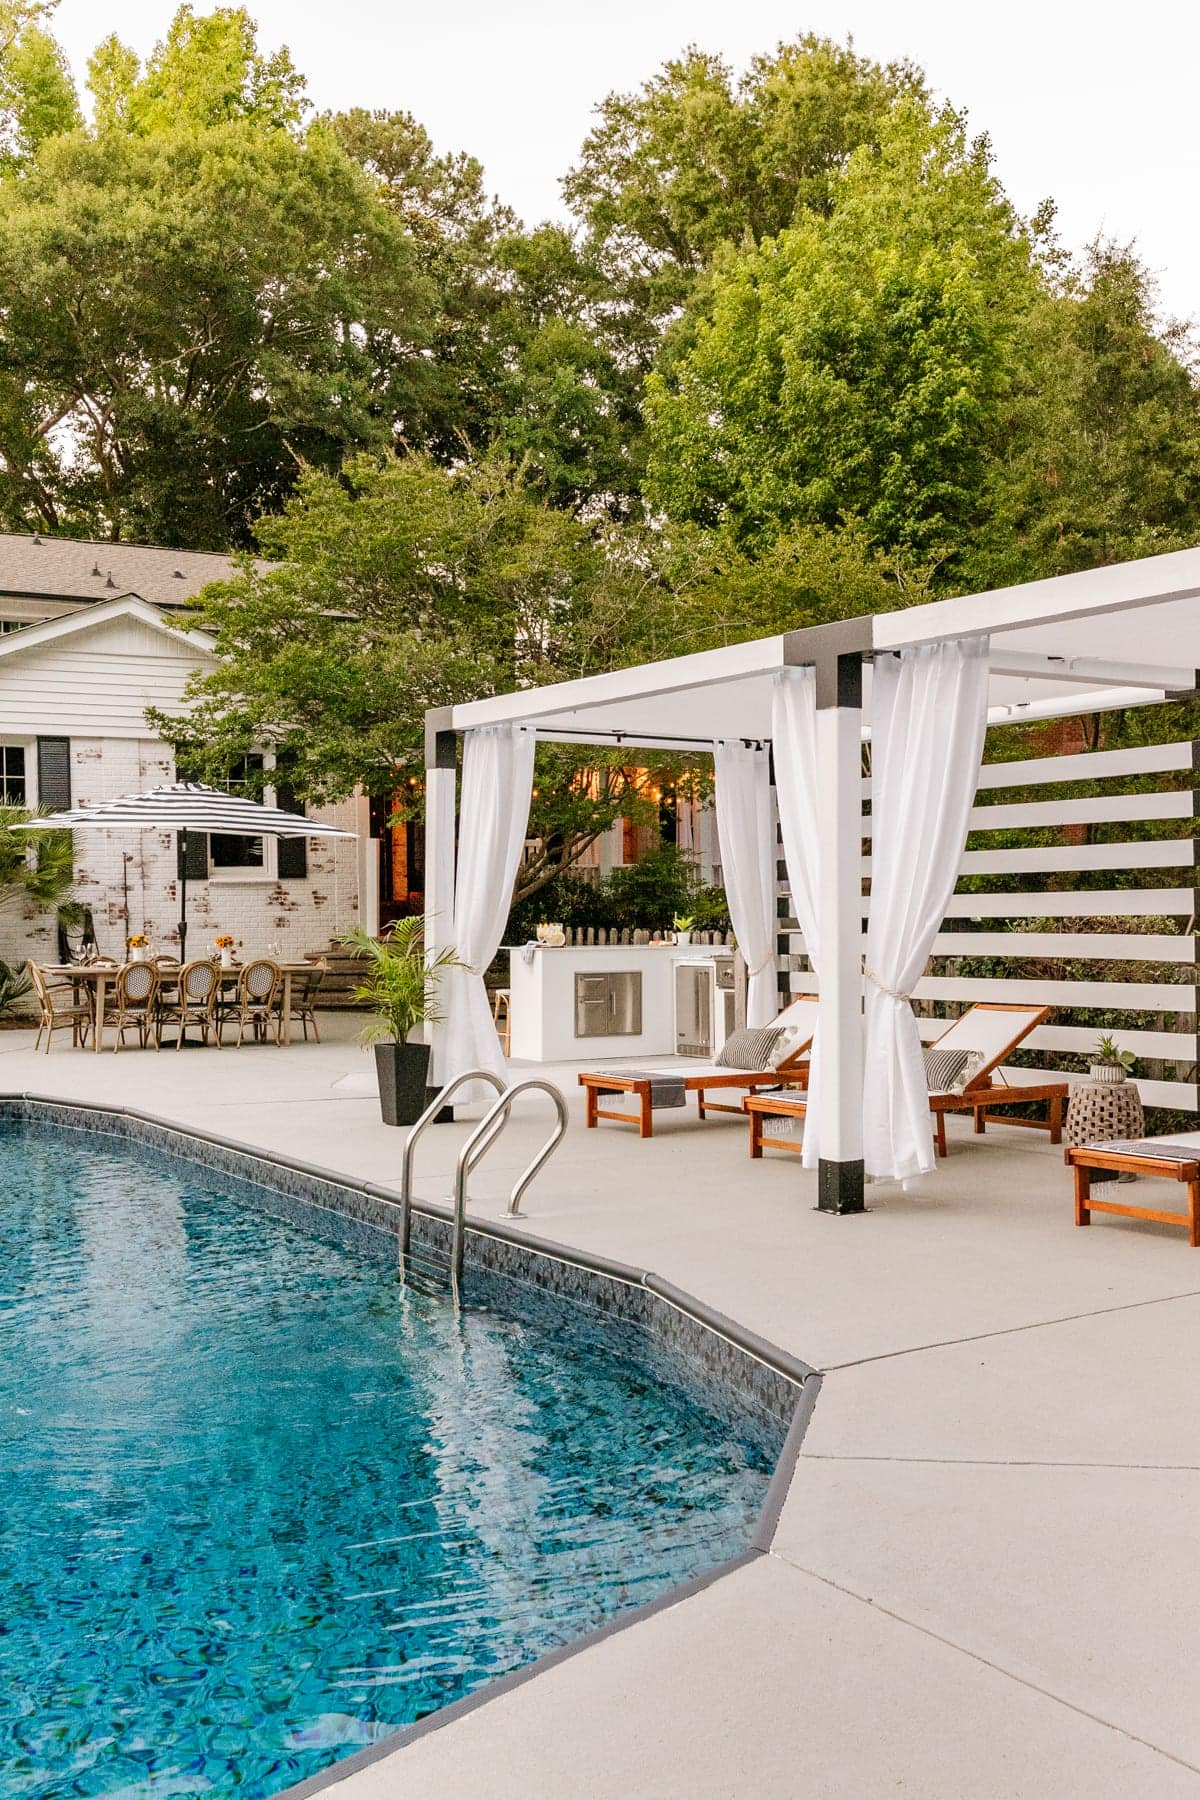 backyard with pool outdoor kitchen pergola cabana and outdoor dining table